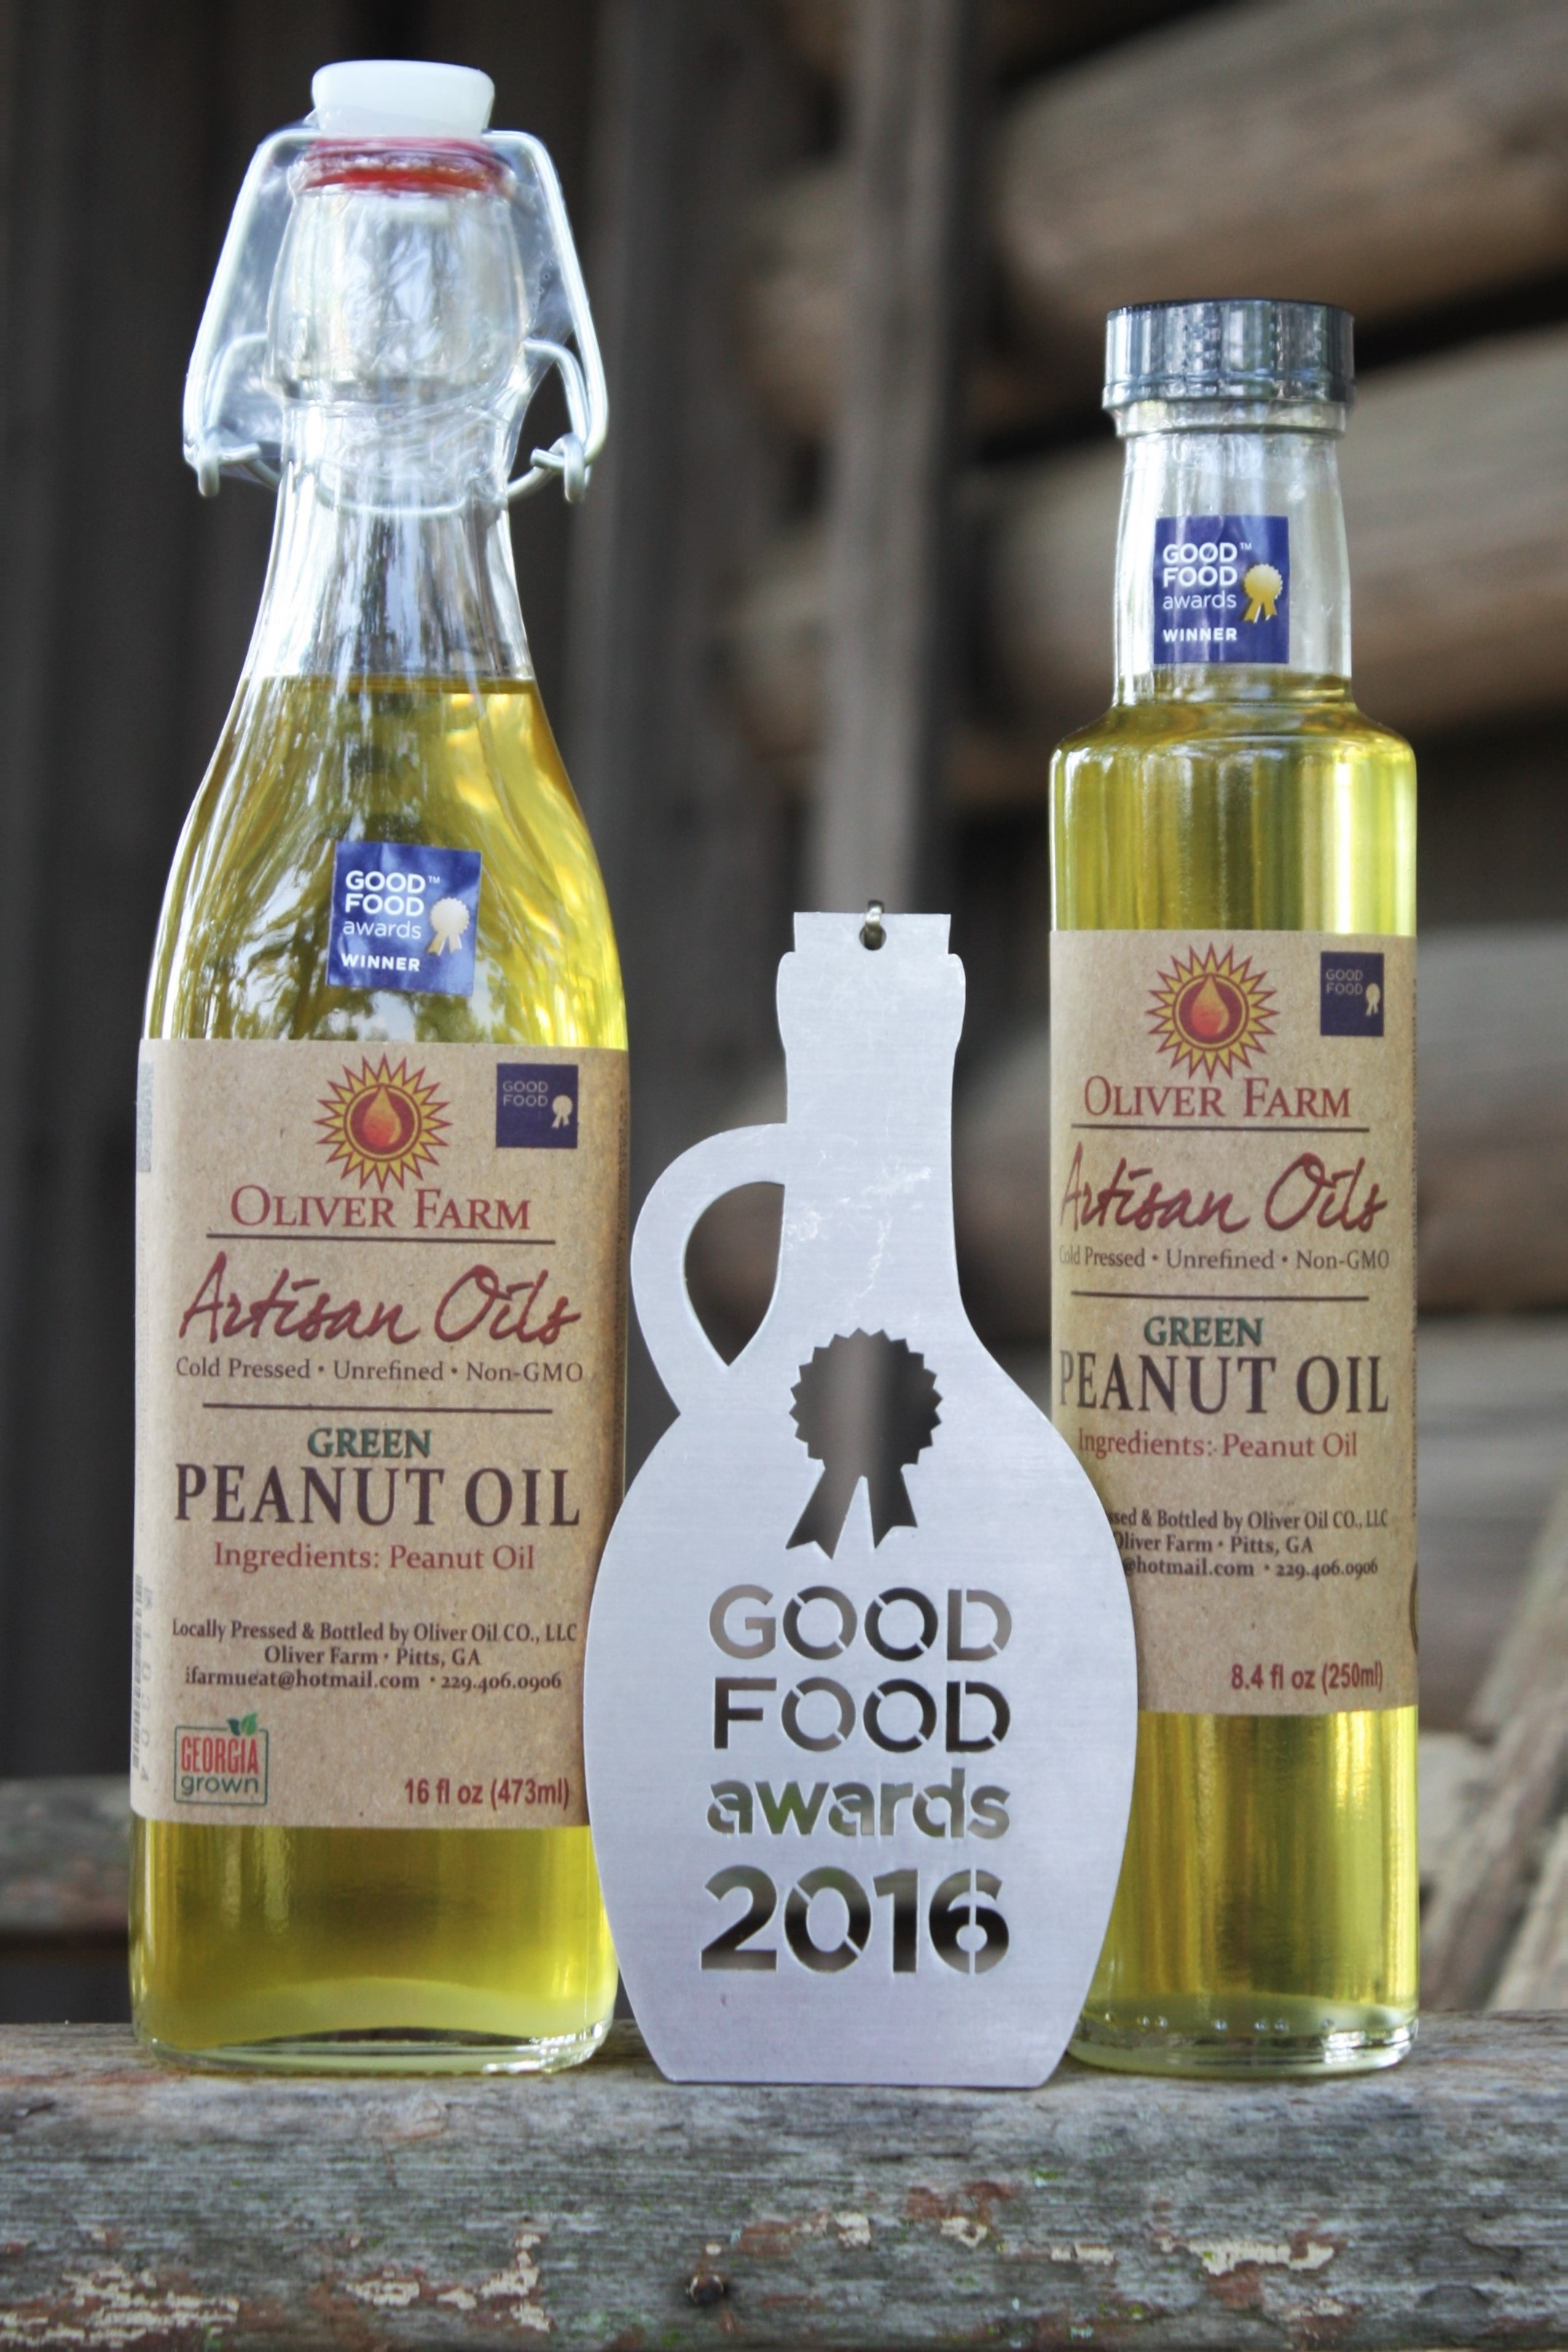 green peanut oil and award/trophy